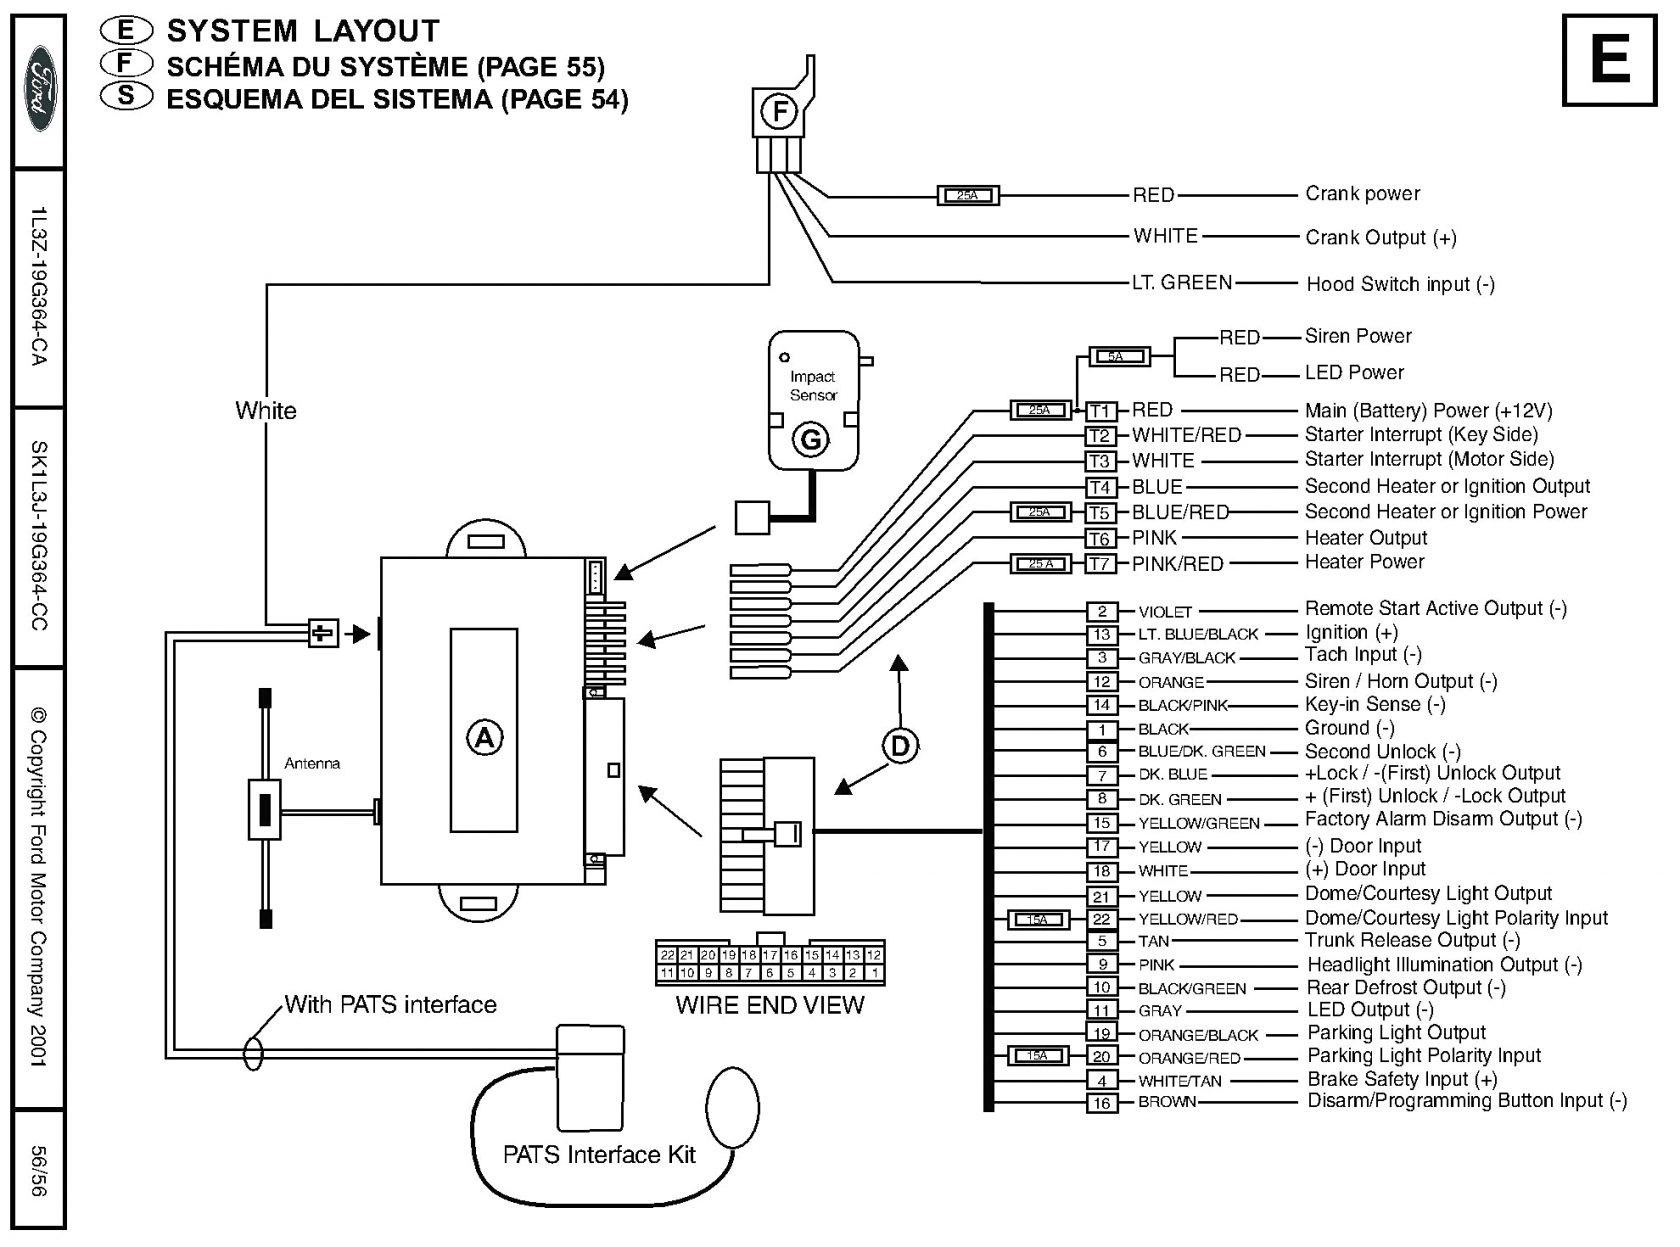 Viper 5305V Remote Start Wiring Diagram | Manual E-Books - Viper 5305V Wiring Diagram